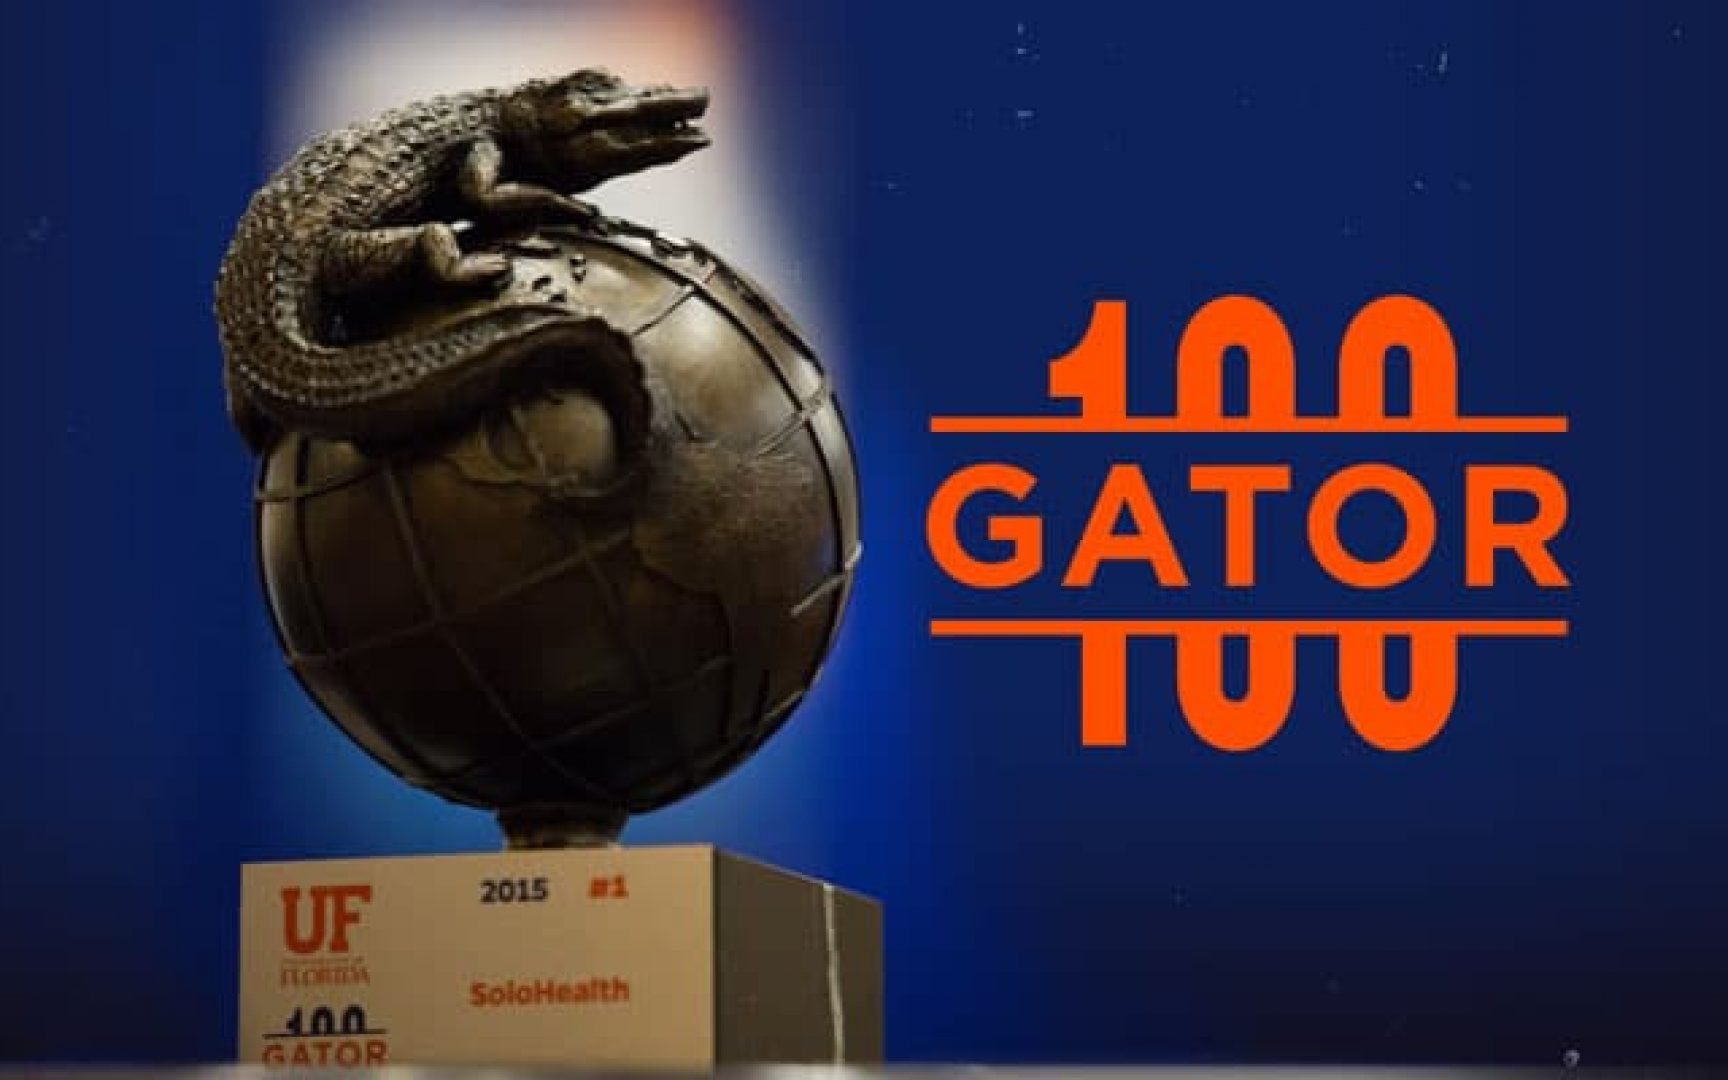 Gator 100 trophy next to the Gator 100 logo